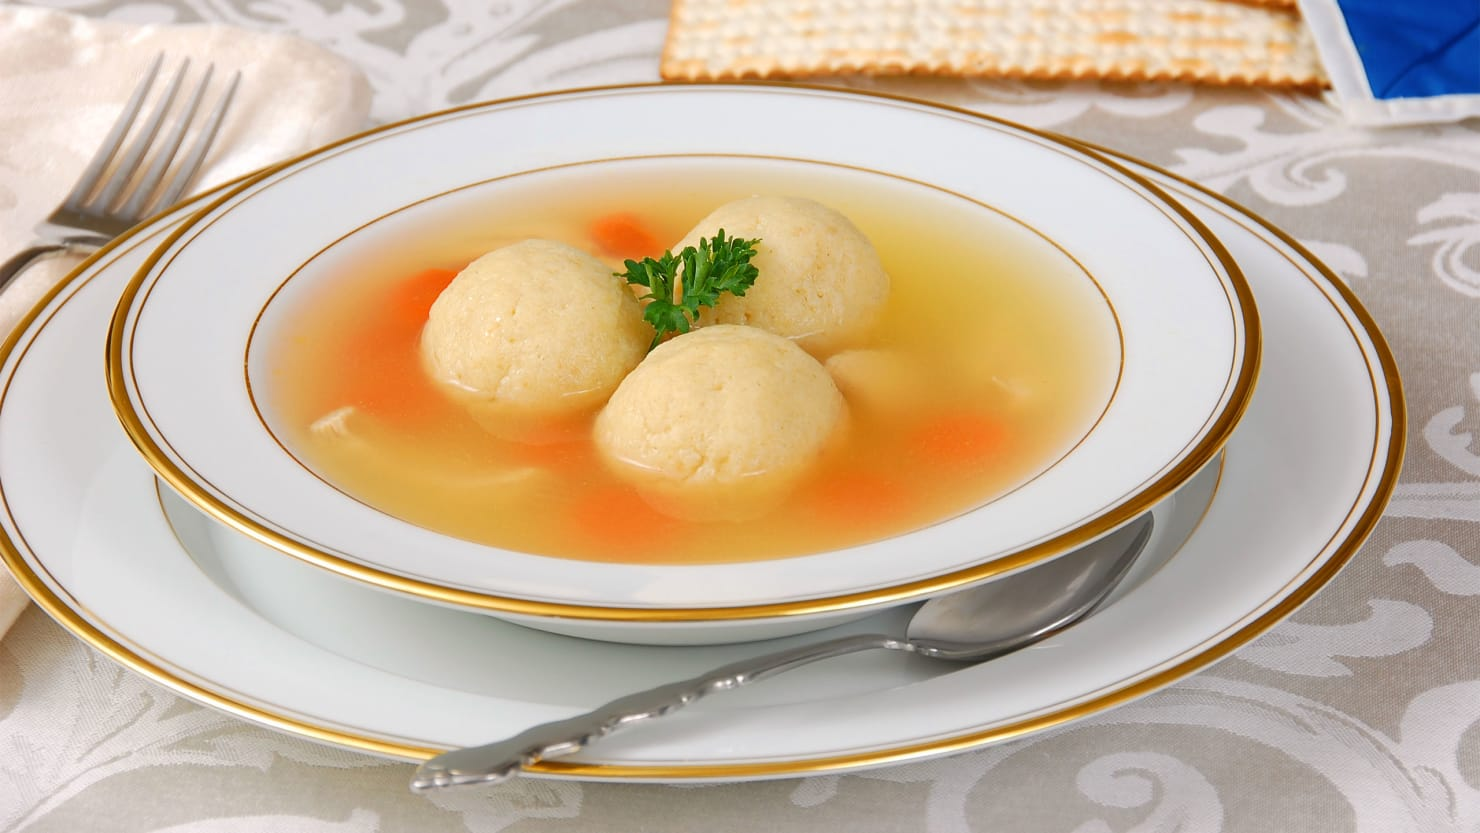 Passover Matzo Ball Soup: Joan Nathan's Recipe From the